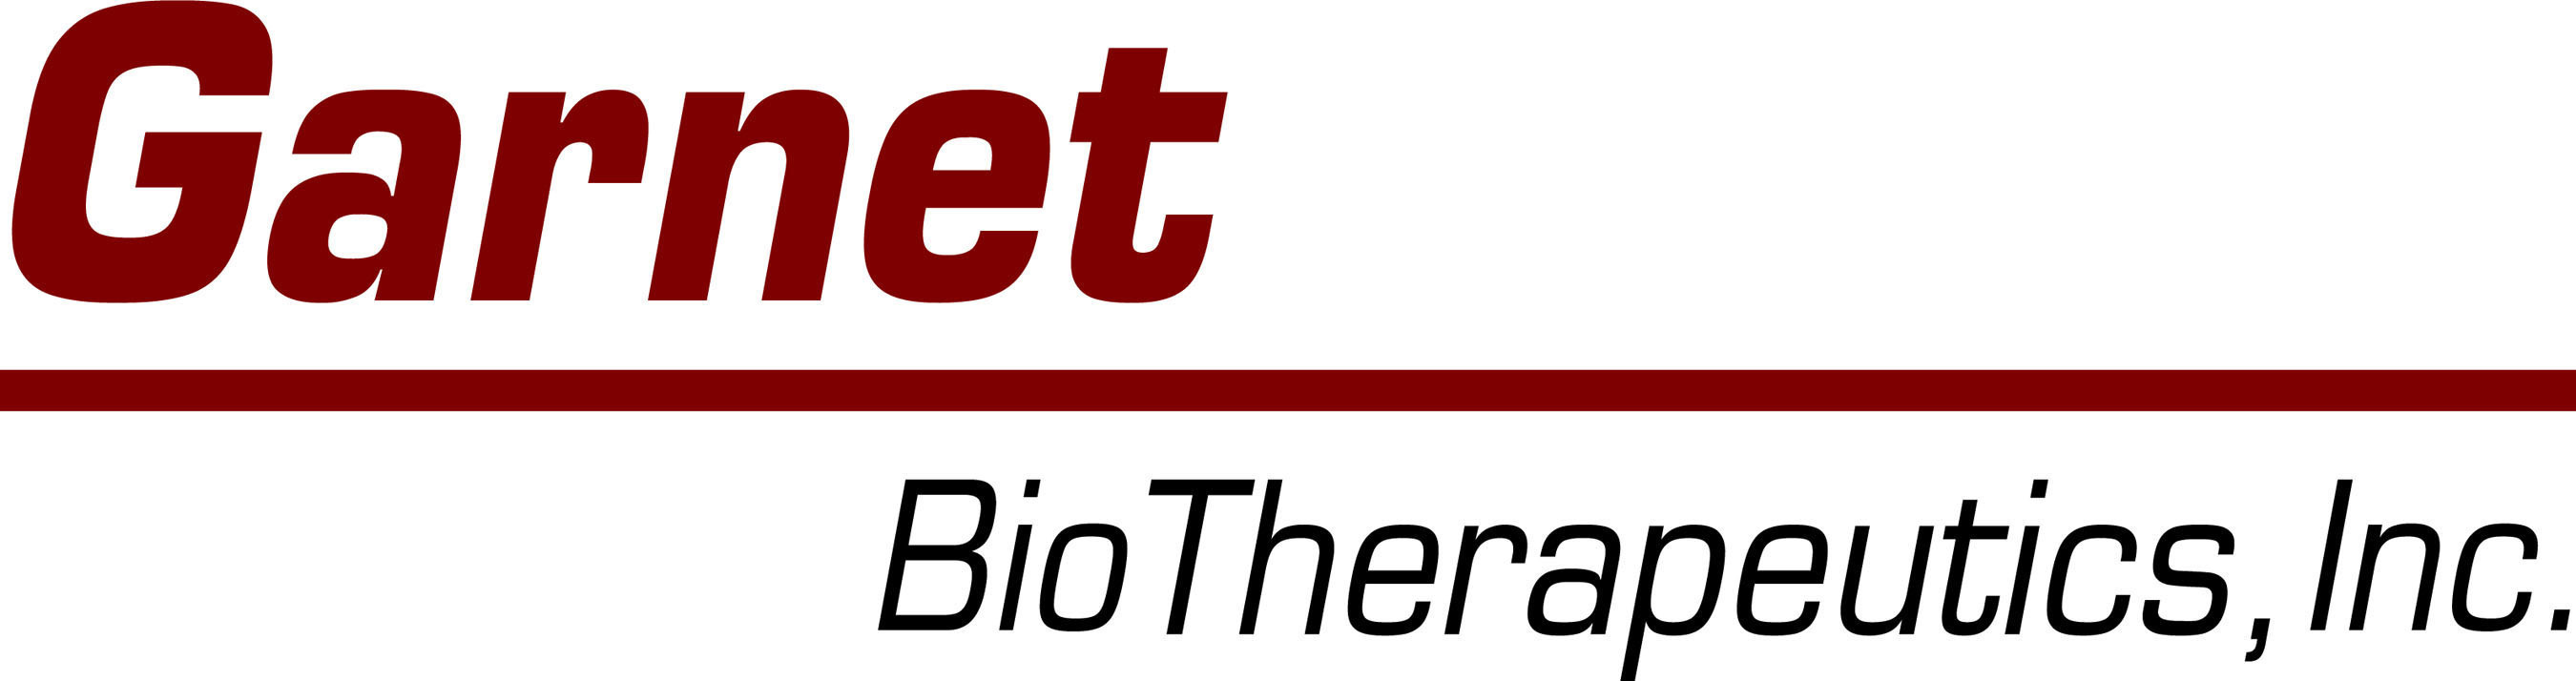 Garnet's mission is to discover, develop, and deliver new regenerative therapies by leveraging the intrinsic ability of adult somatic cells to repair, regenerate, and remodel tissue in acute and chronic disease settings.